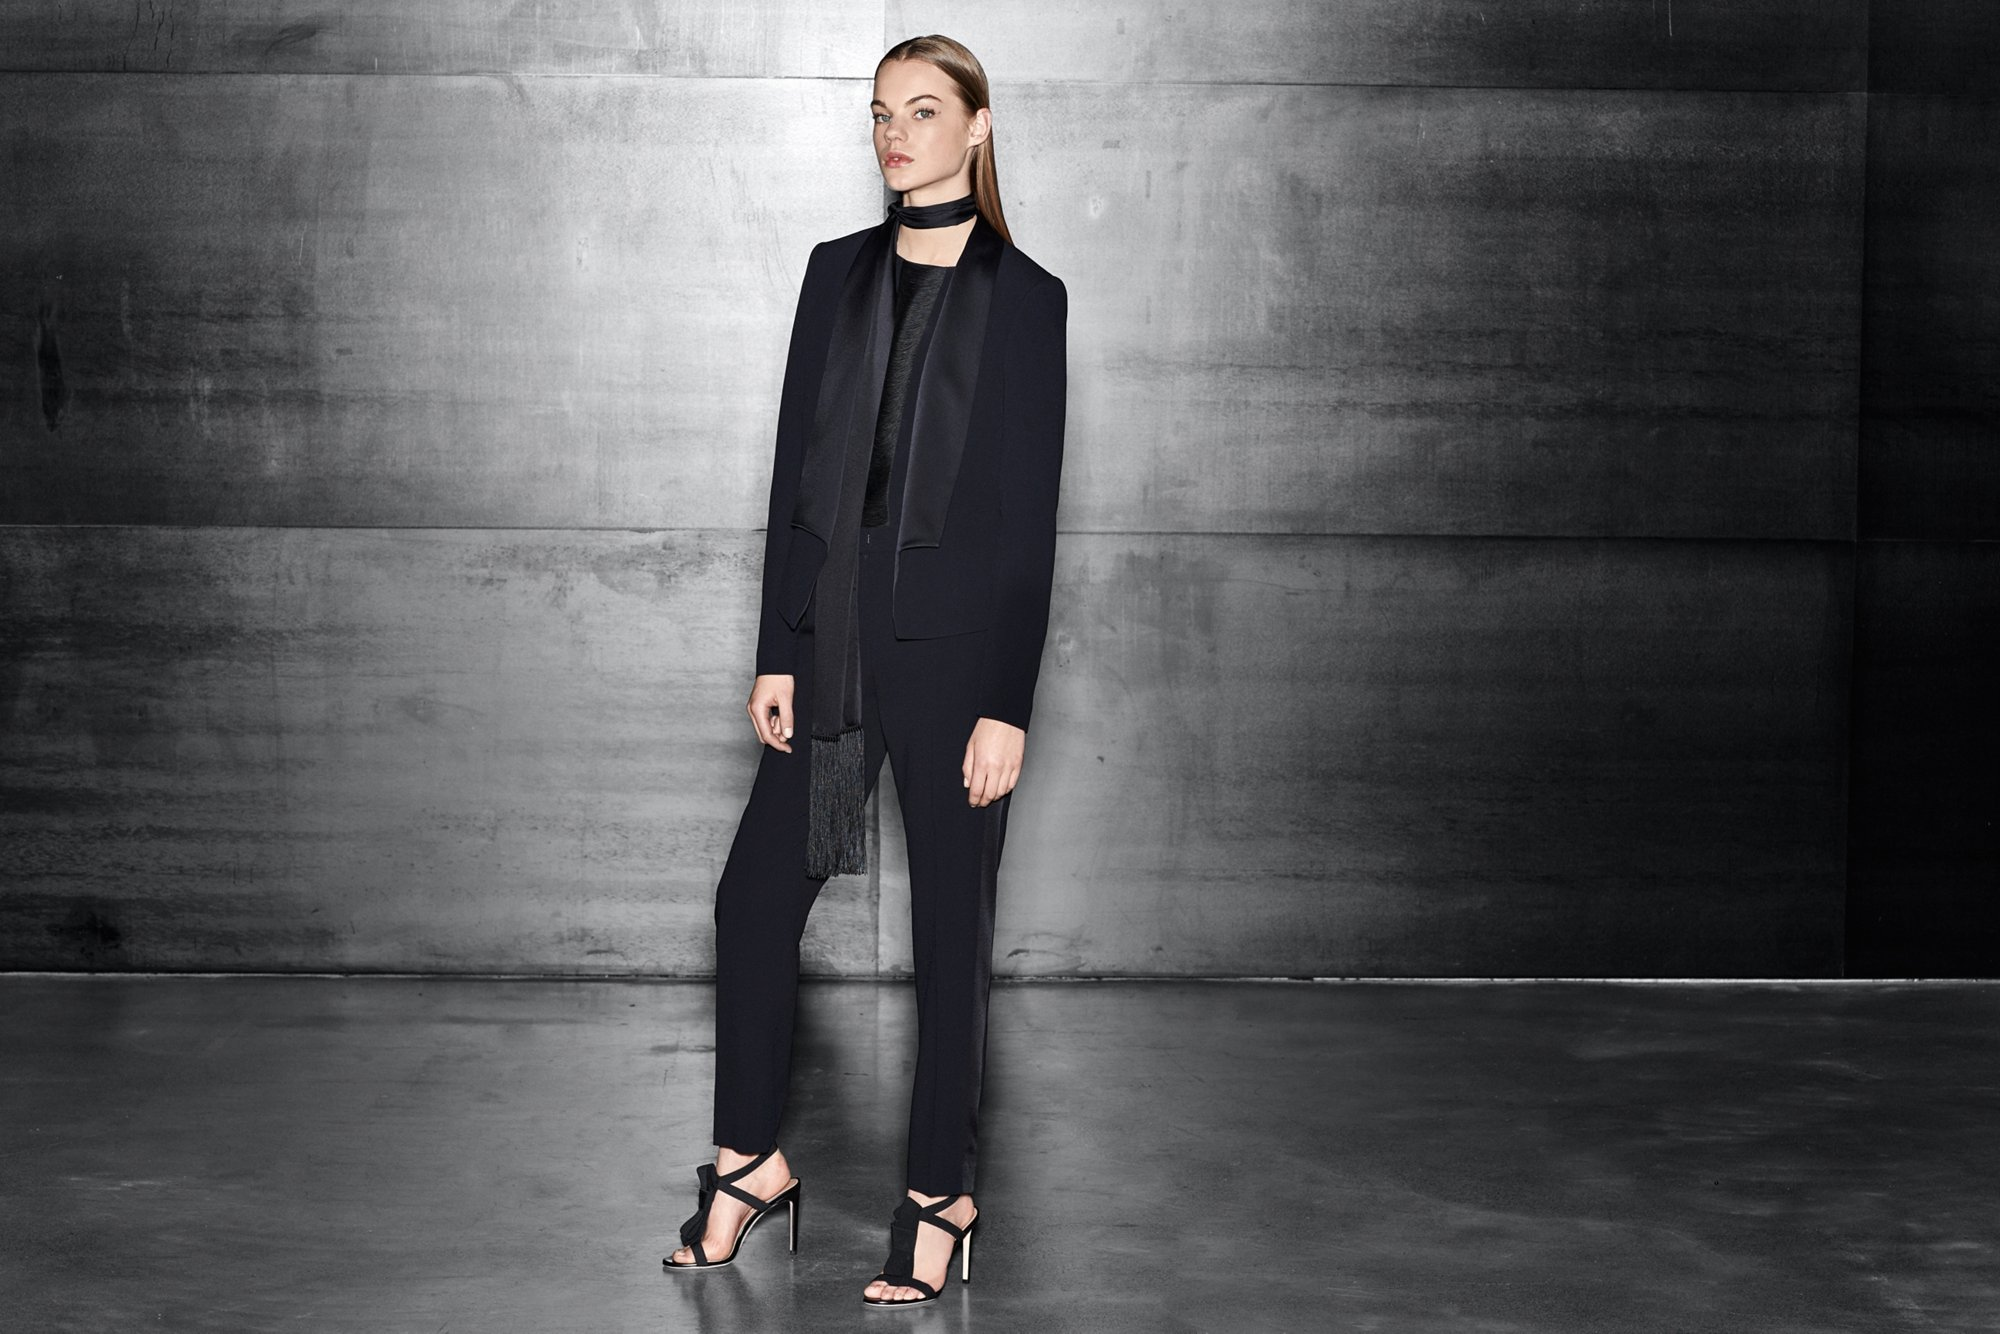 Black jacket over black blouse and black trousers with black shoes by BOSS